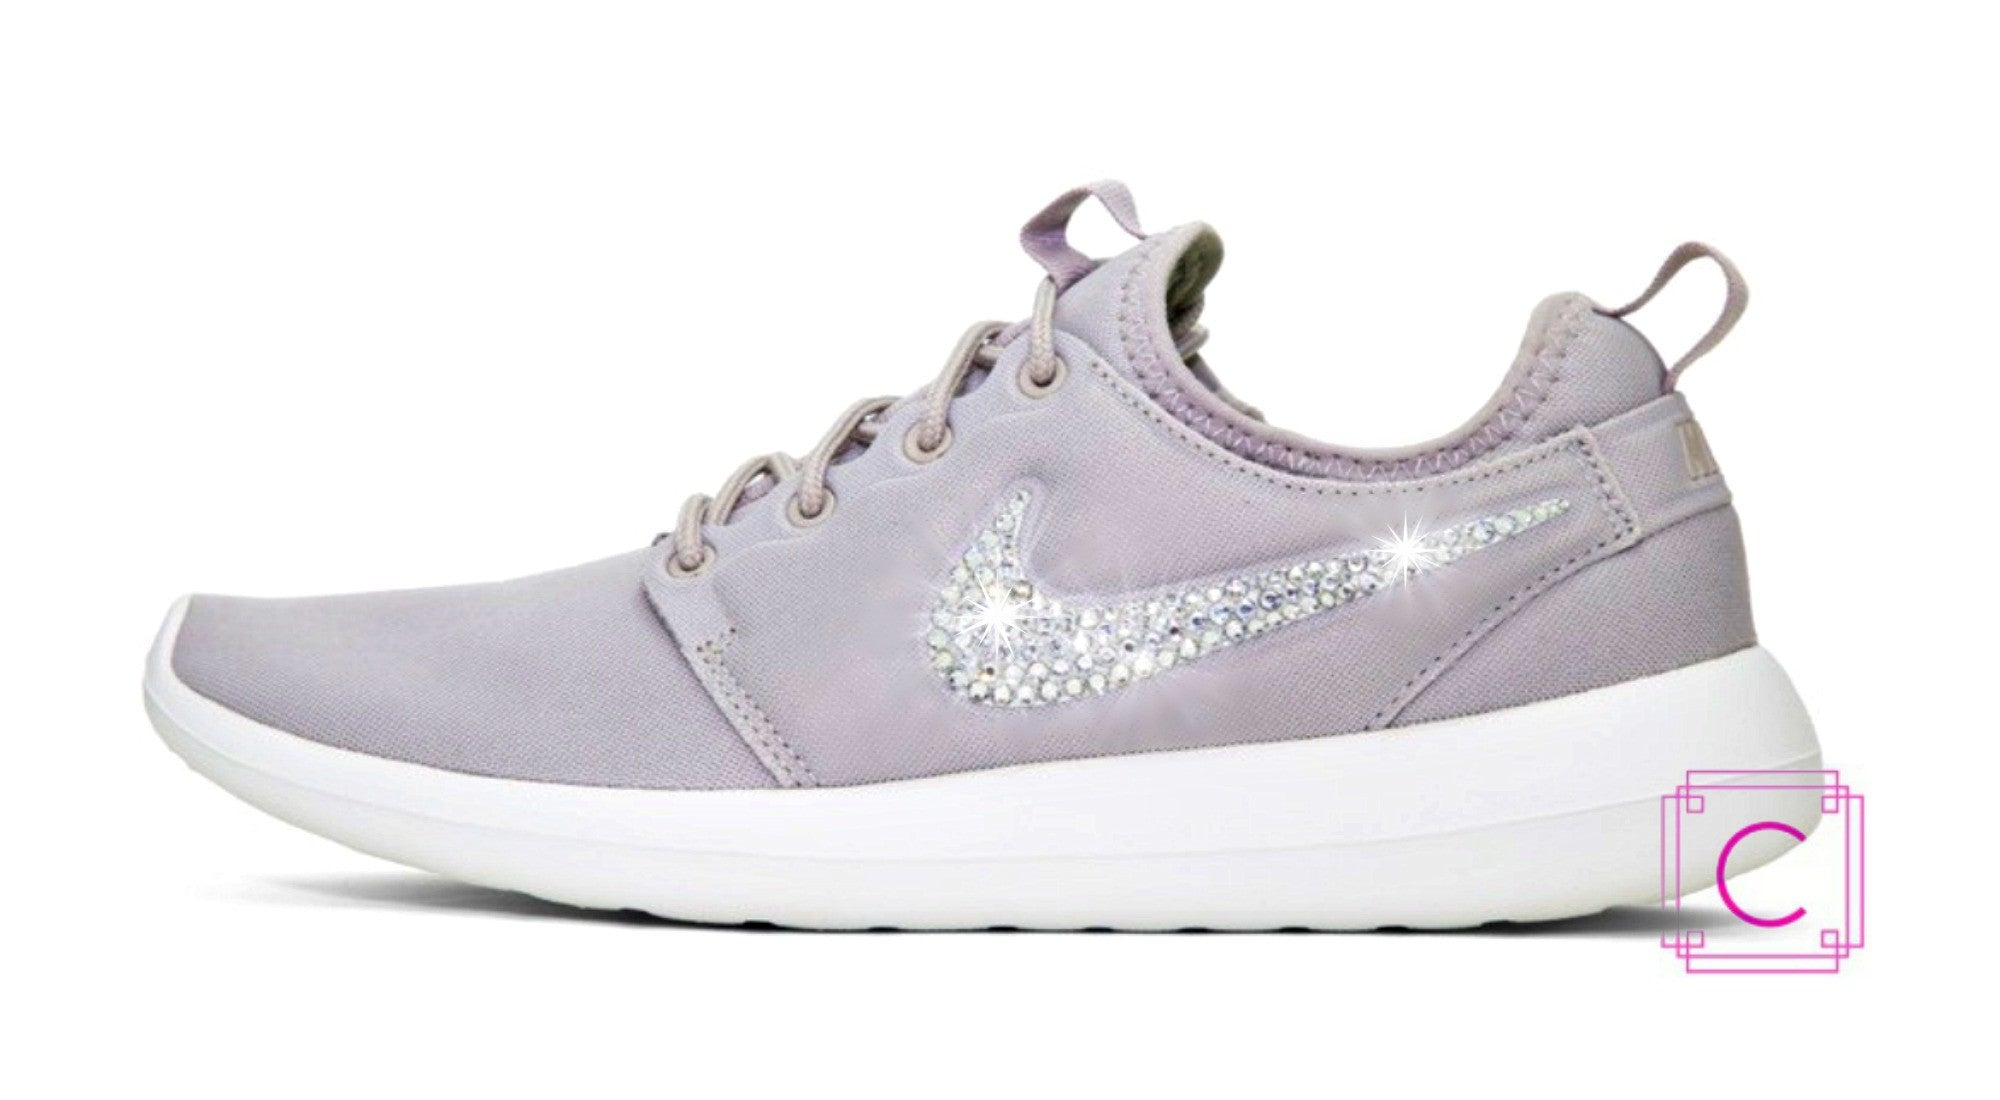 Women s Nike Roshe Two Premium in Wolf Grey w Swarovski Crystals details fb672a5a3bc7